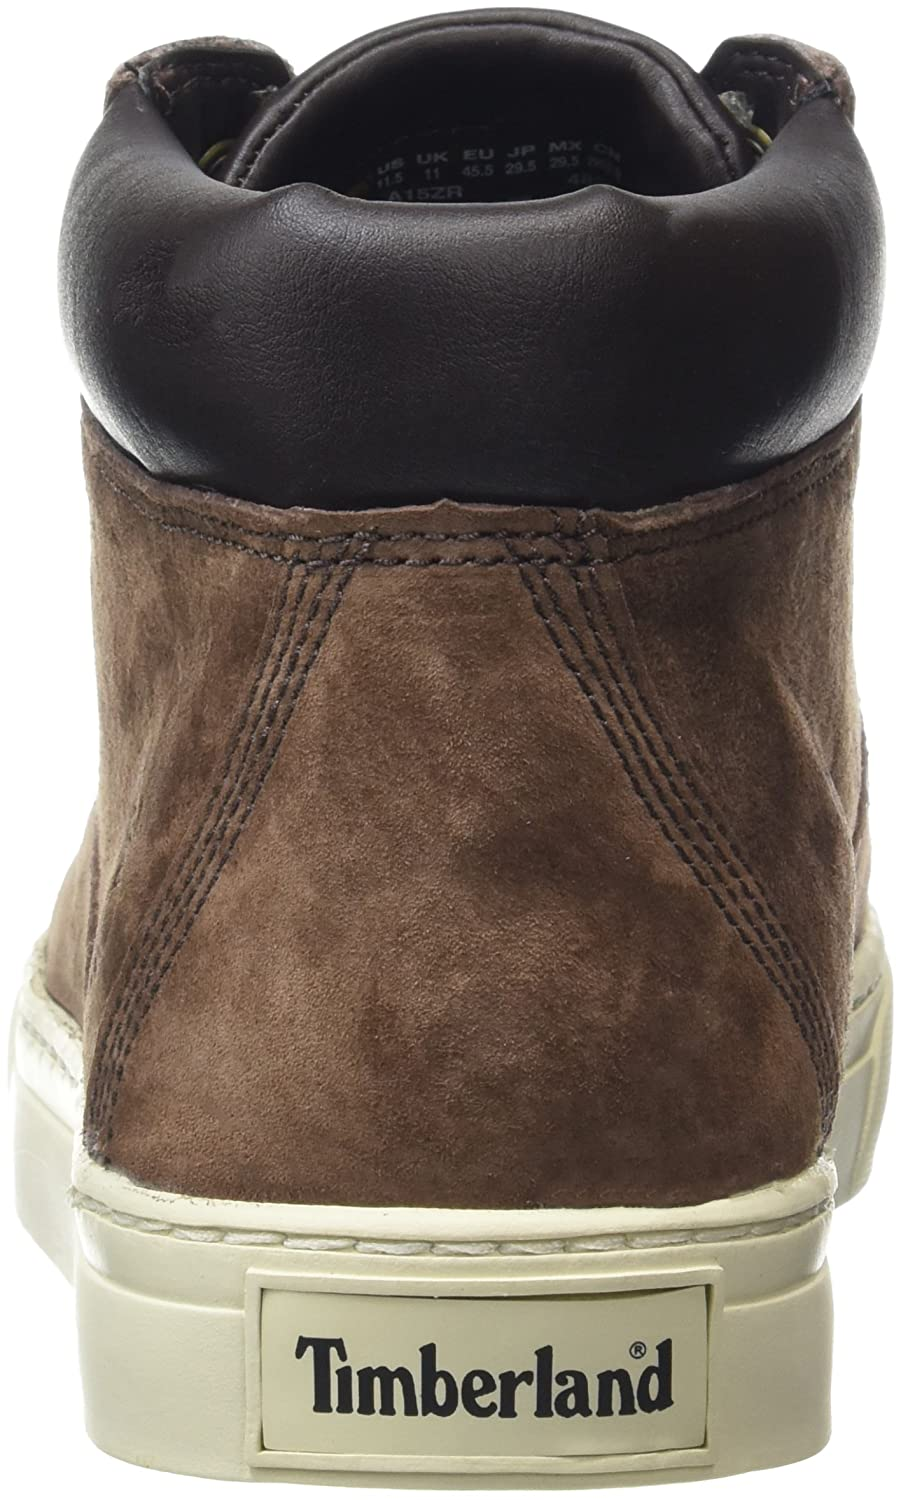 Timberland Dauset, Sneakers Hautes Homme - Marron - Brown (Coconut Shell),  43: Amazon.fr: Chaussures et Sacs